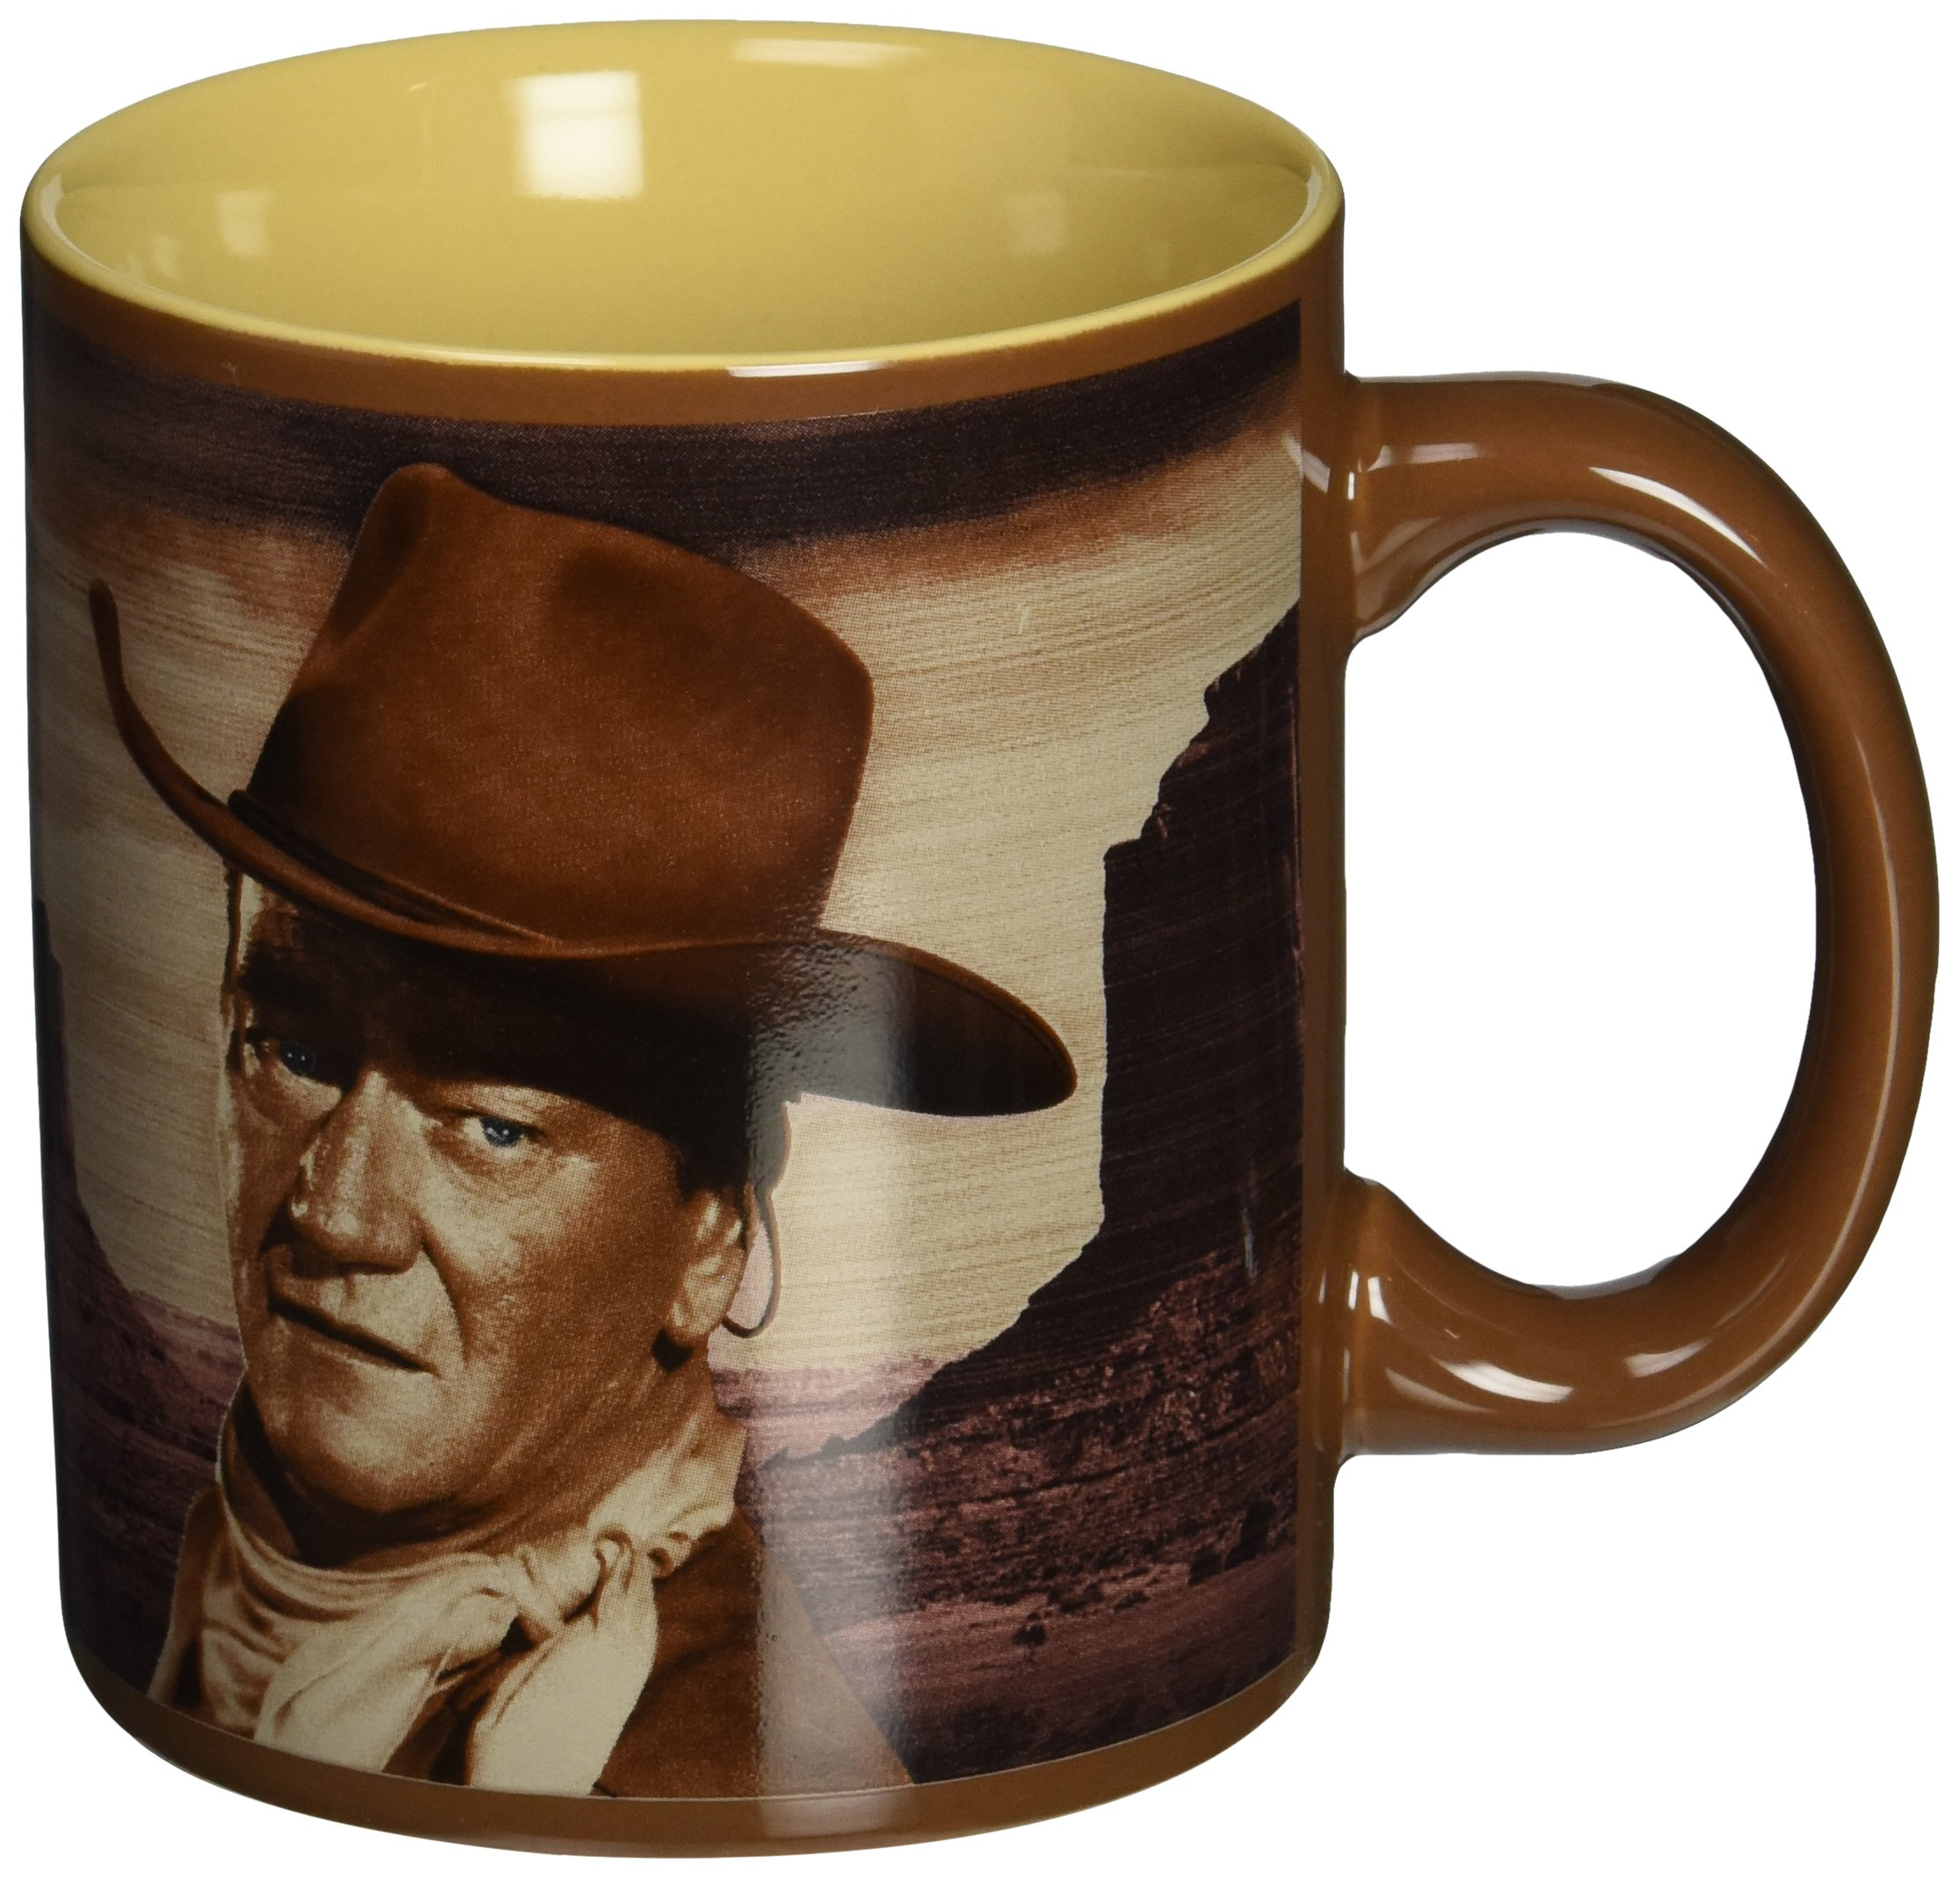 surprising inspiration awesome mugs. Vandor 15161 John Wayne  A Man s Got To Do 12 oz Ceramic Mug Brown Best Rated in Mugs Helpful Customer Reviews Amazon com